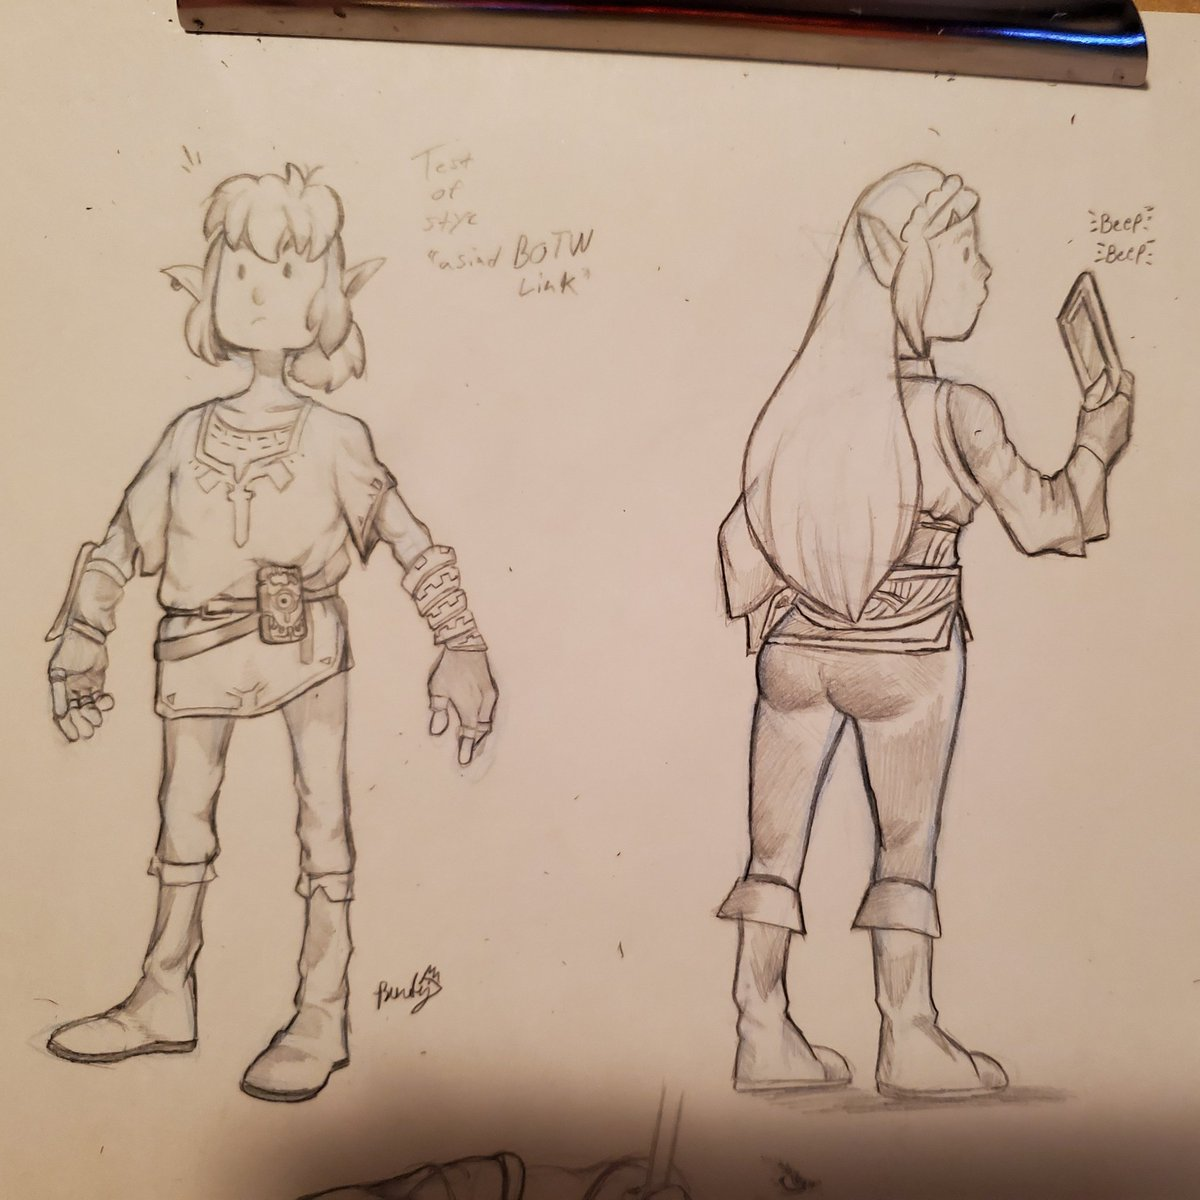 Botw doodles  . . #botw #zelda #link #ganon #evil #good #videogame #doodle #cartoon #cute #style #drawingdaily #drawingstyle #illistration  #drawingoftheday #art #artist #artsandcrafts #artoftheweek #cosplay #sketch #sketchbook #drawing  #muscle #fitness #comicbook #anime #manga